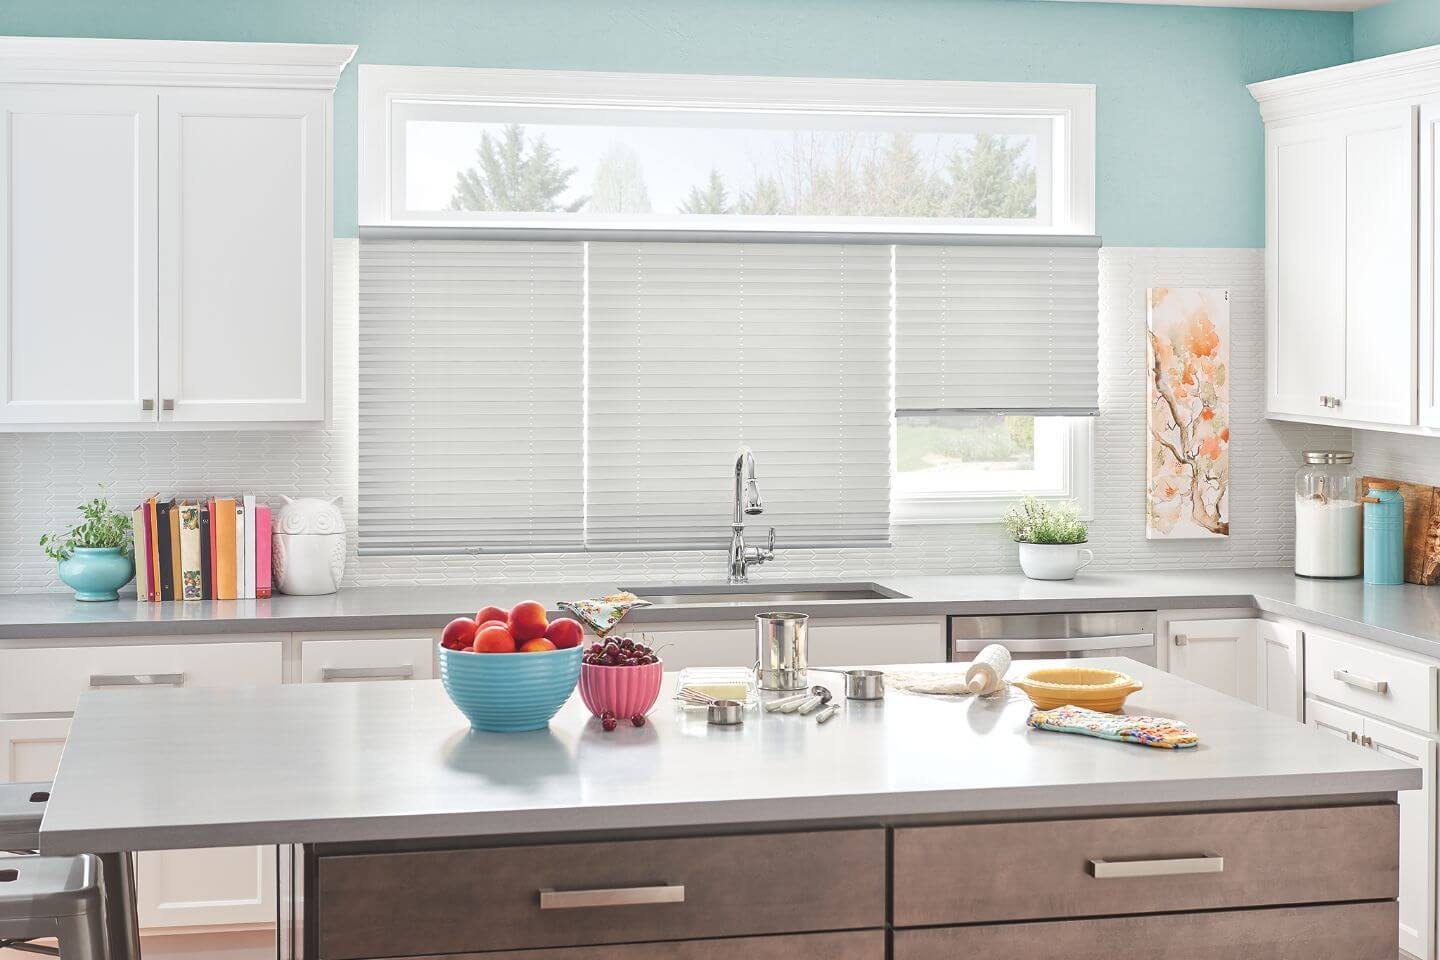 Bali Morrisville NC Window Shades And Shutters